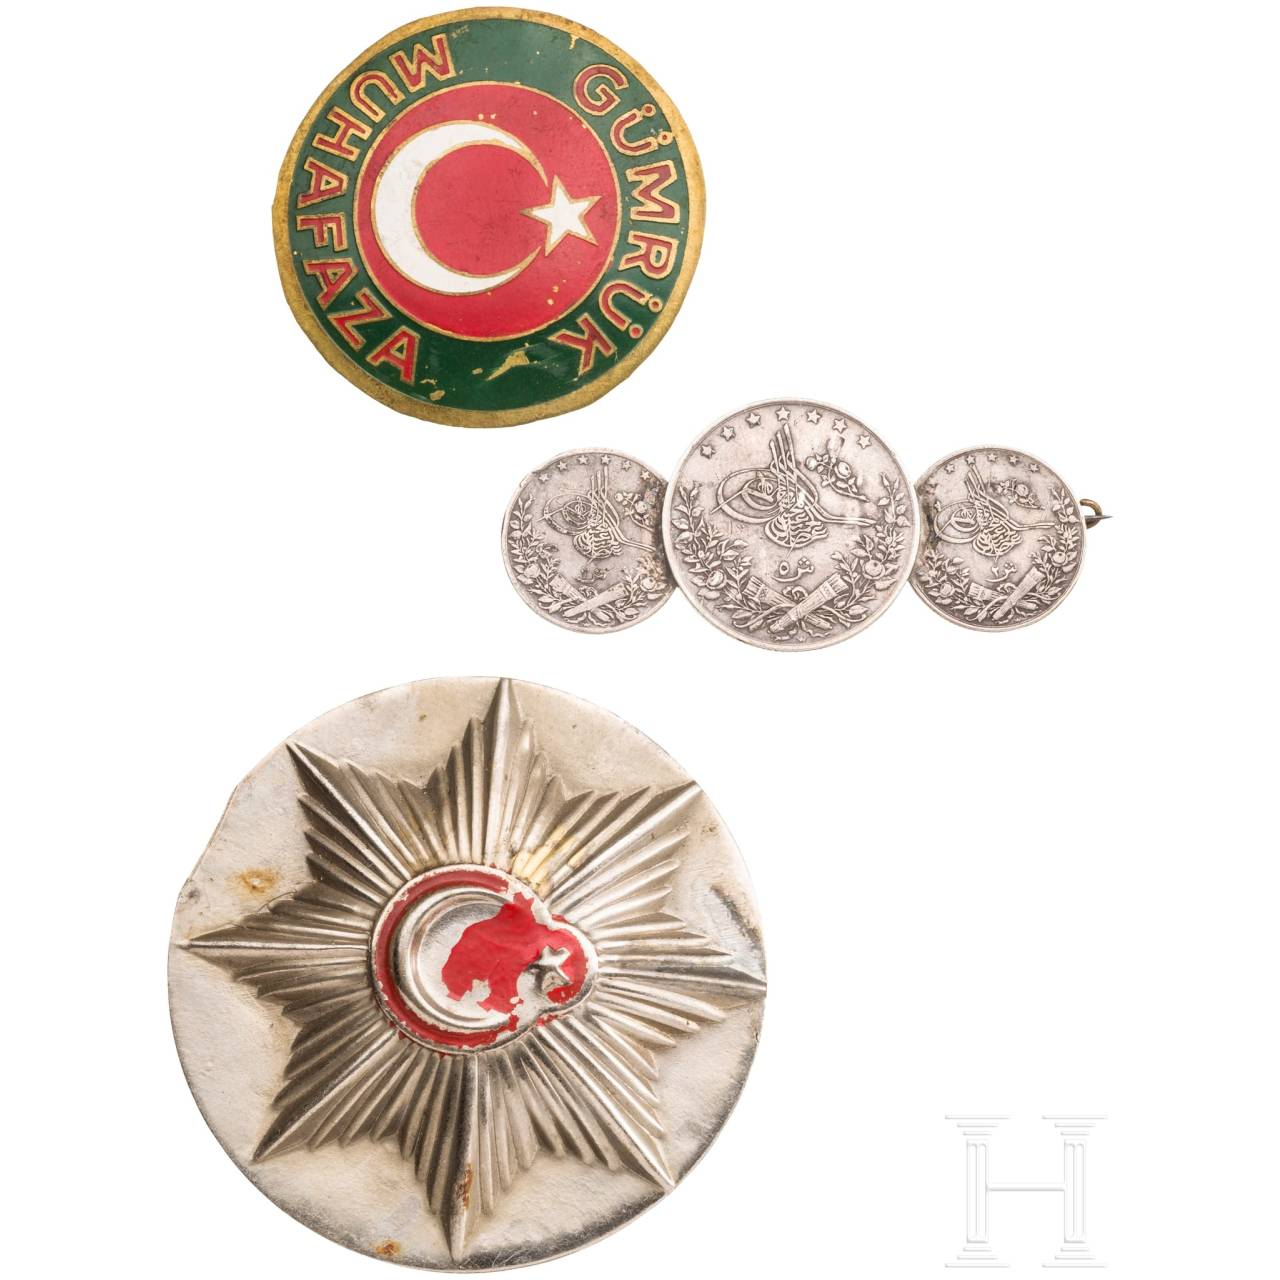 Three silver medals 1875, police and customs badges, Turkey